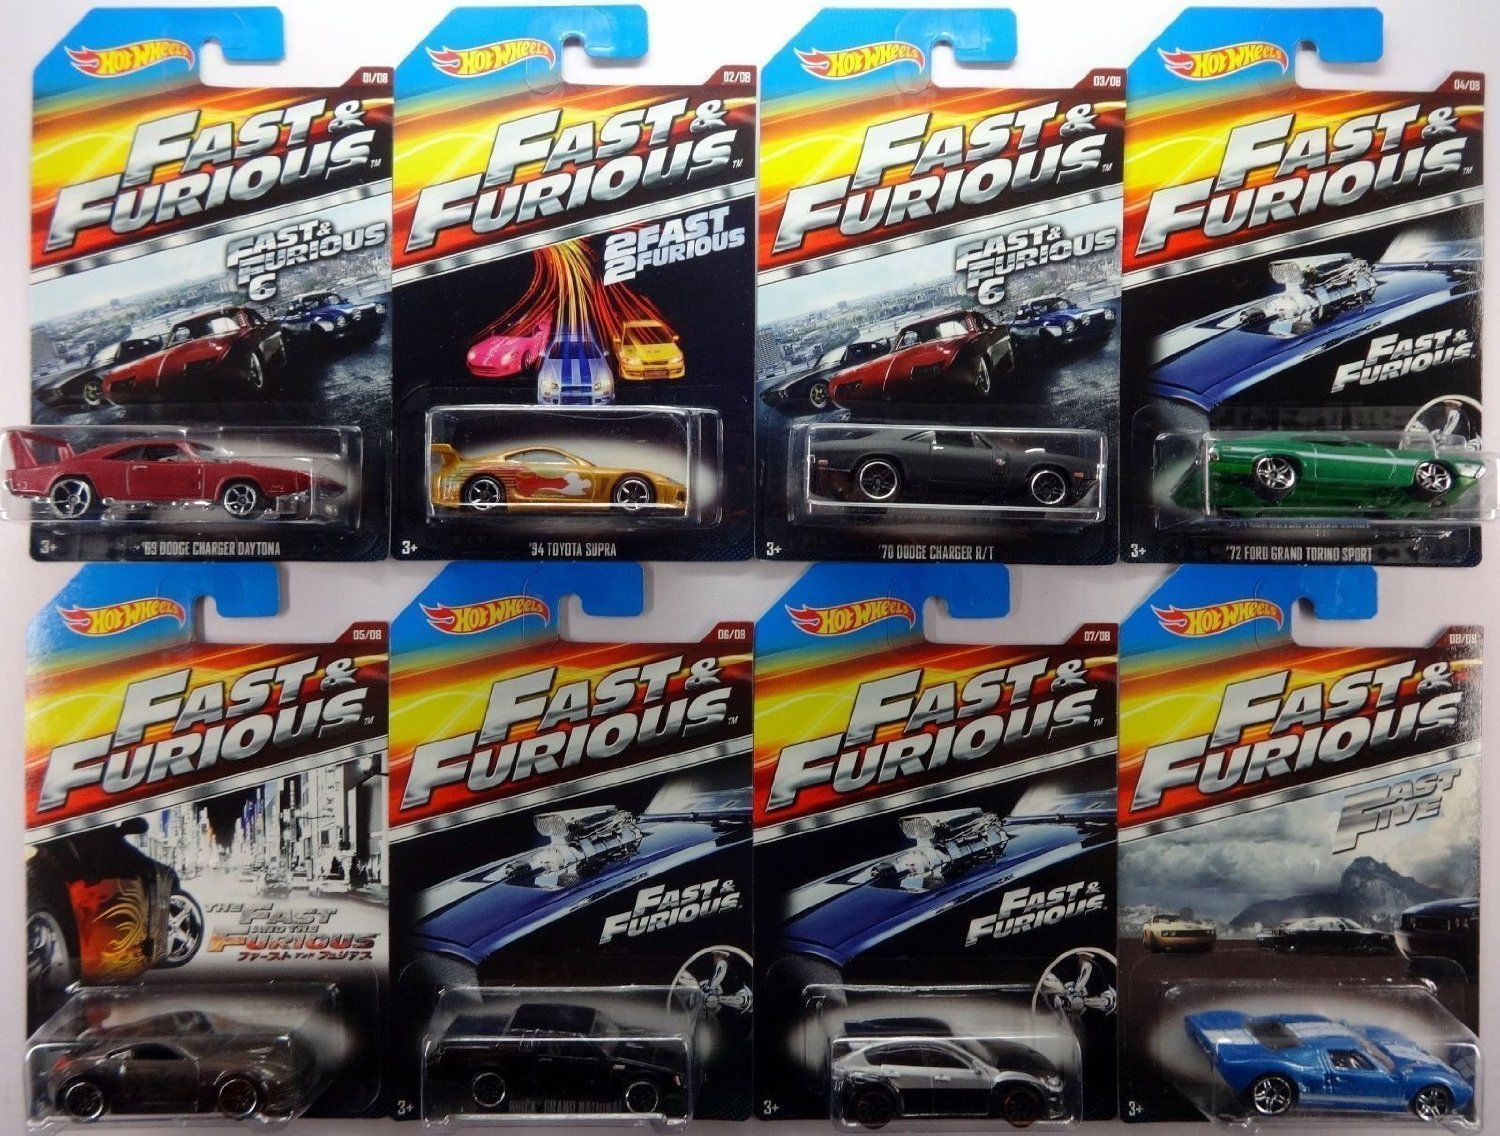 2015 Hot Wheels Fast & Furious - '69 Dodge Charger Daytona, '94 Toyota Supra, '70 Dodge Charger R/T, '72 Ford Grand Torino Sport, Nissan 350Z, Buick Grand National, Subaru WRX STI, Ford GT-40 - Complete Set of 8!! by Mattel